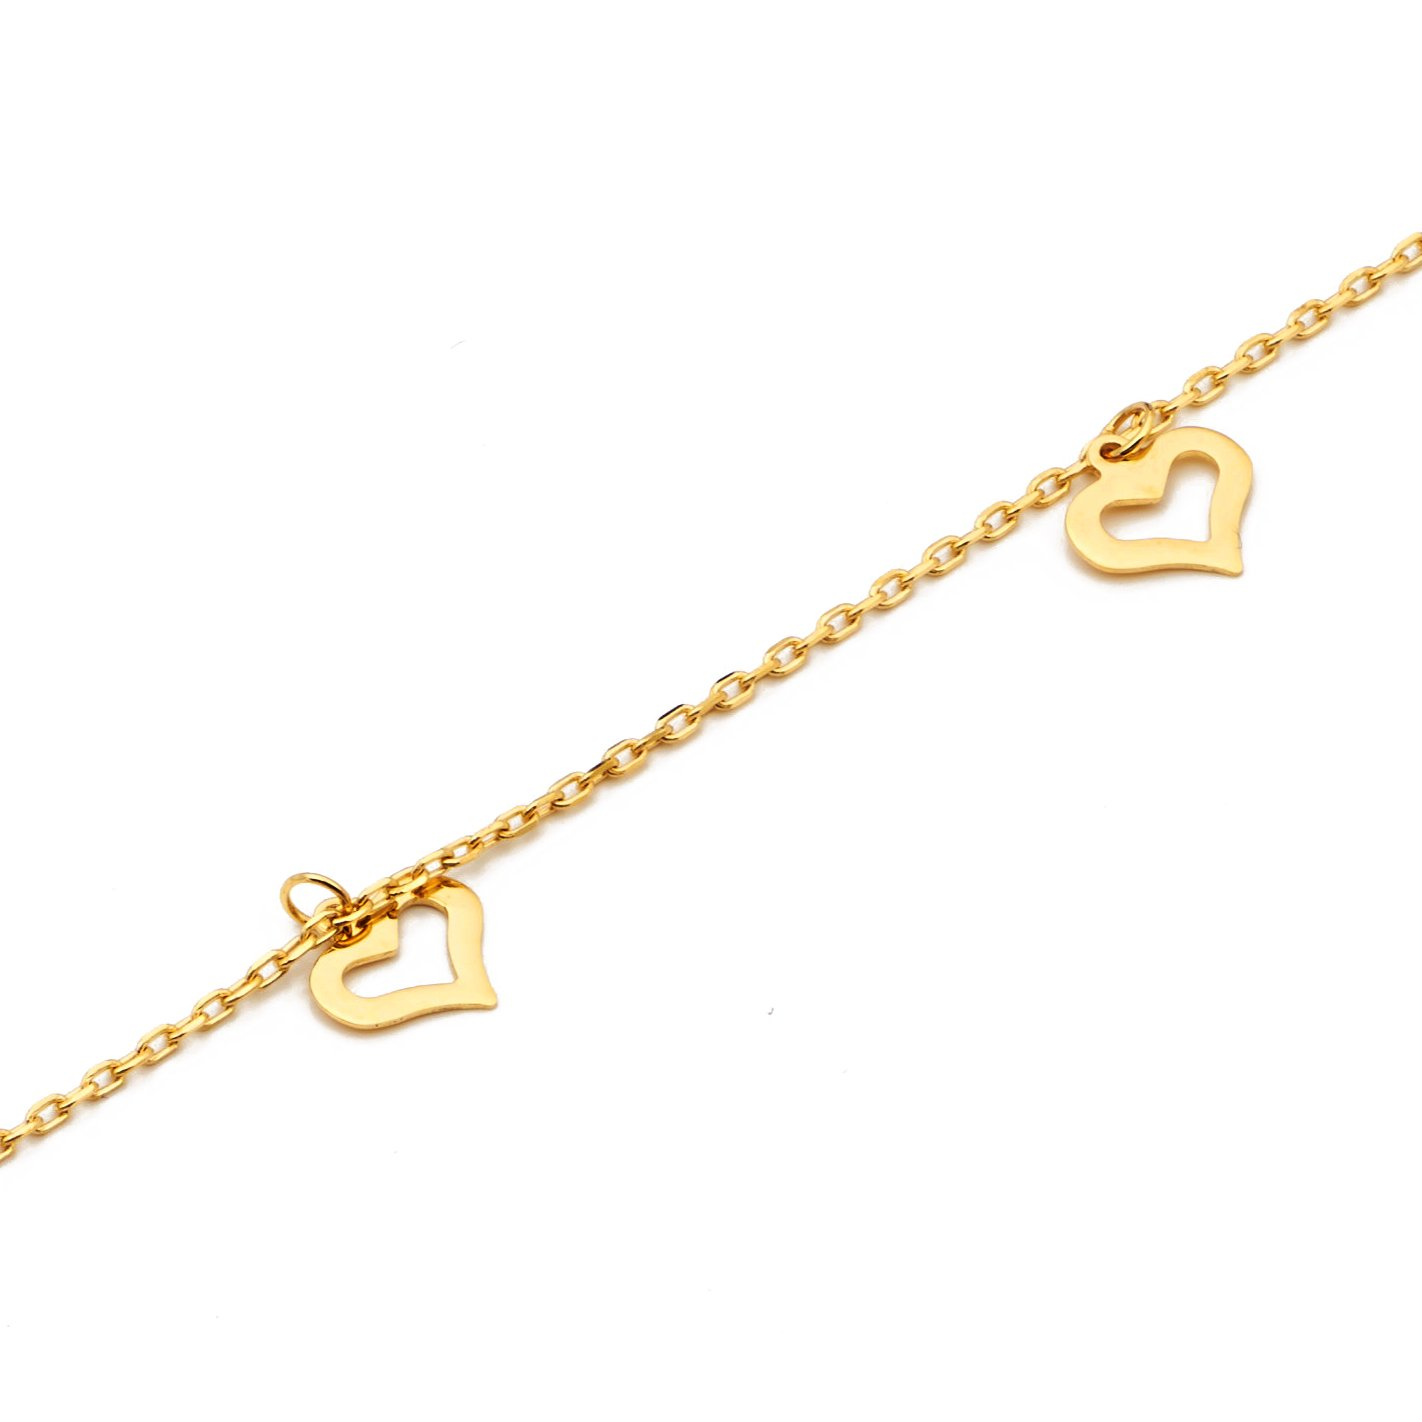 LOVEBLING 10K Yellow Gold .50mm Diamond Cut Rolo Chain with 8 Heart pendants Anklet Adjustable 9'' to 10'' (#12) by LOVEBLING (Image #4)